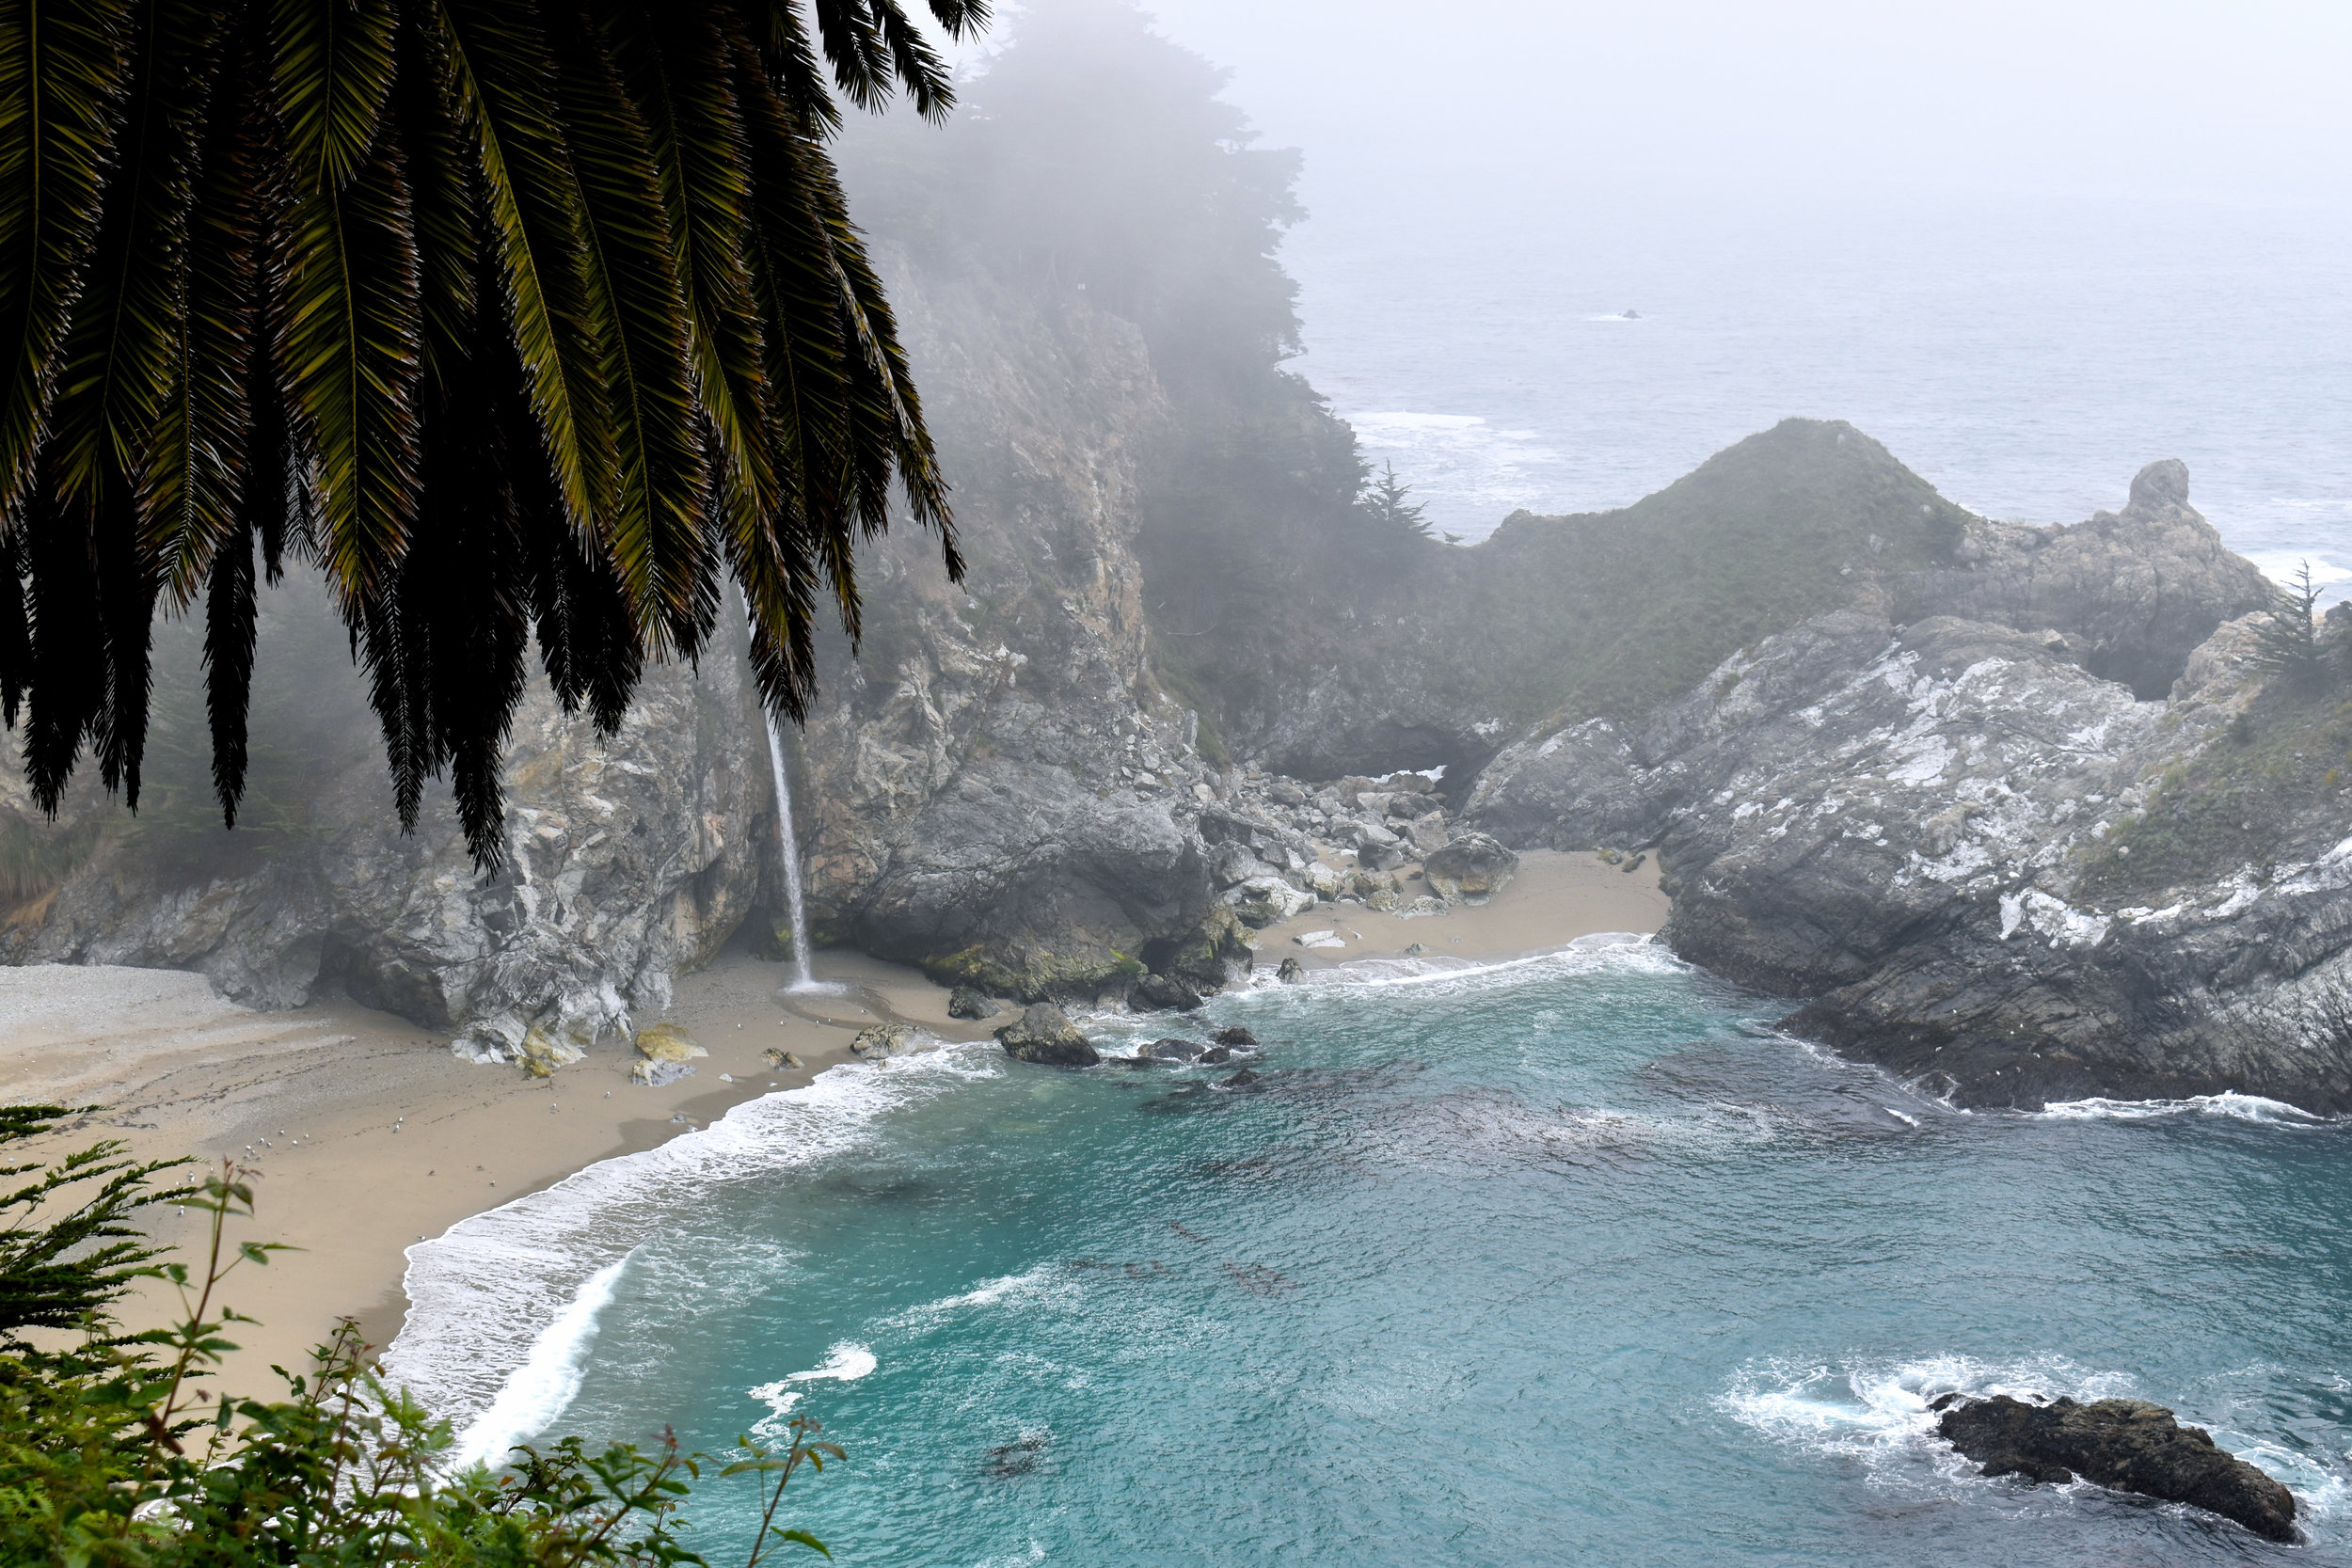 Photos taken in Big Sur, California, by the author.